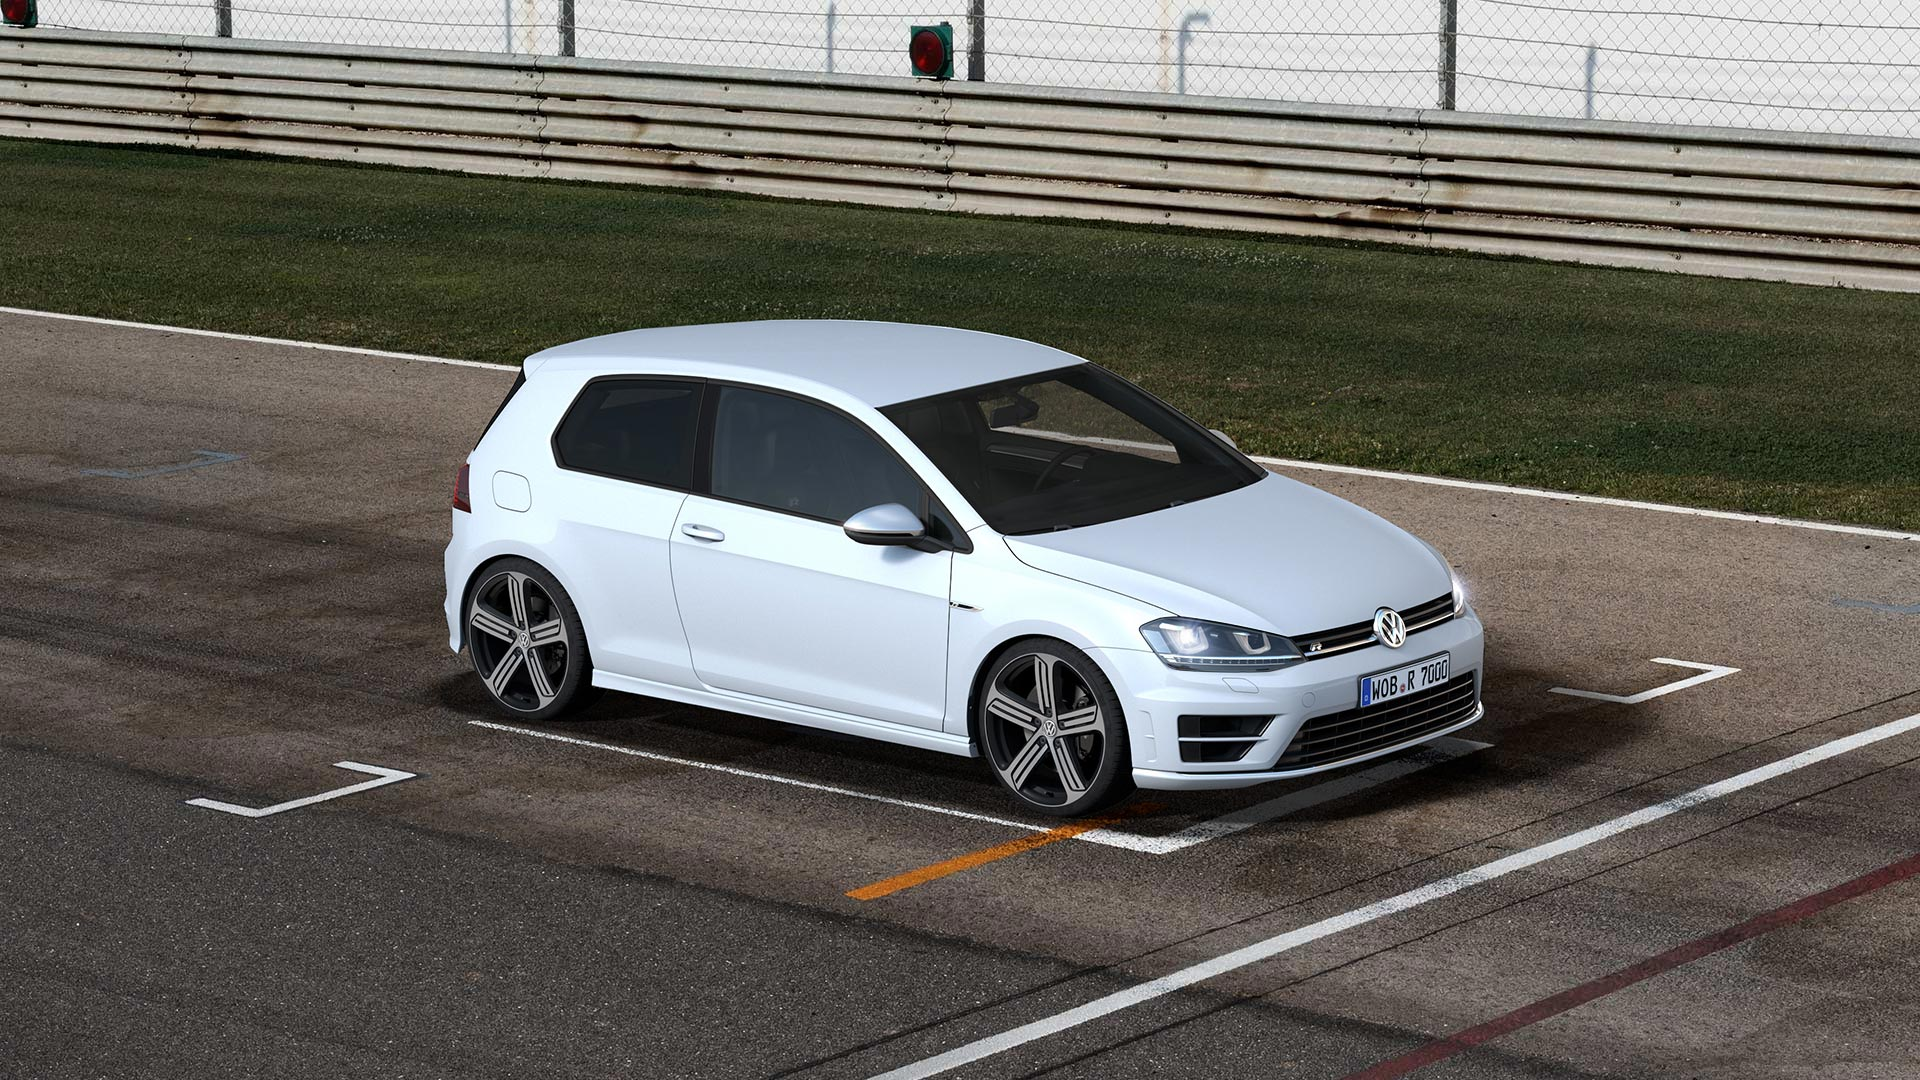 volkswagen golf vii r et r400 topic officiel page 5 golf volkswagen forum marques. Black Bedroom Furniture Sets. Home Design Ideas